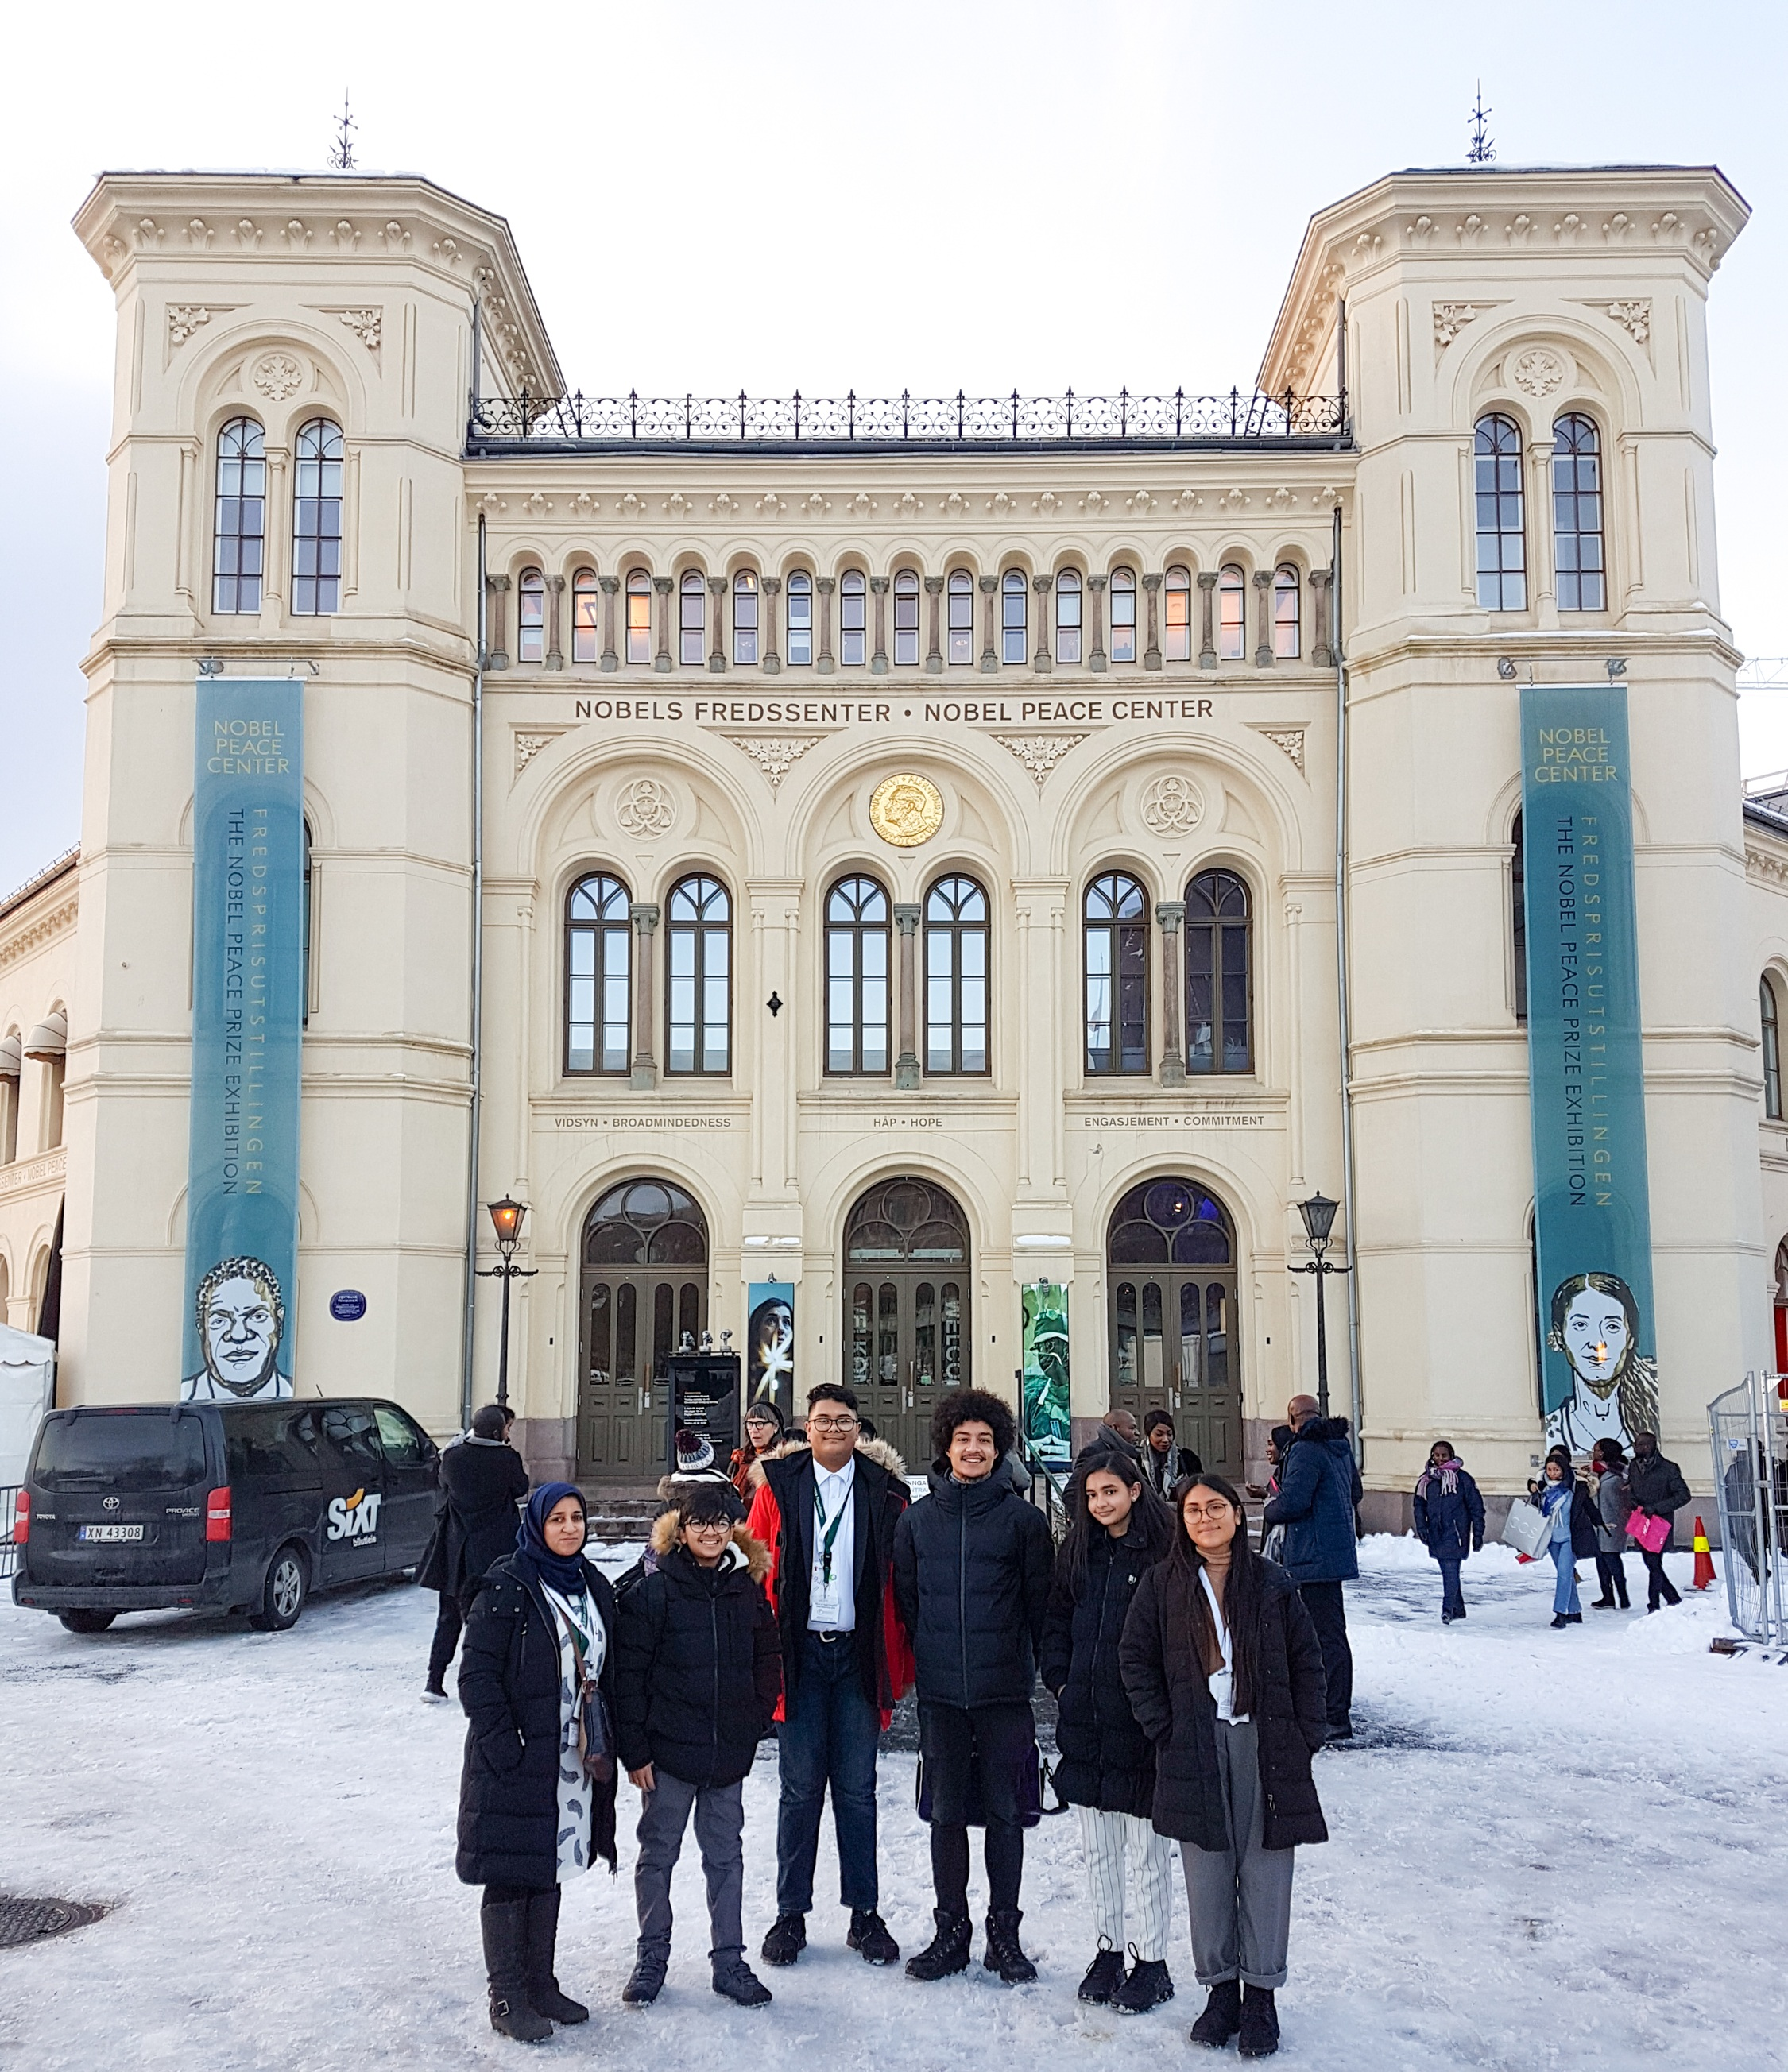 Outside The Nobel Peace Centre